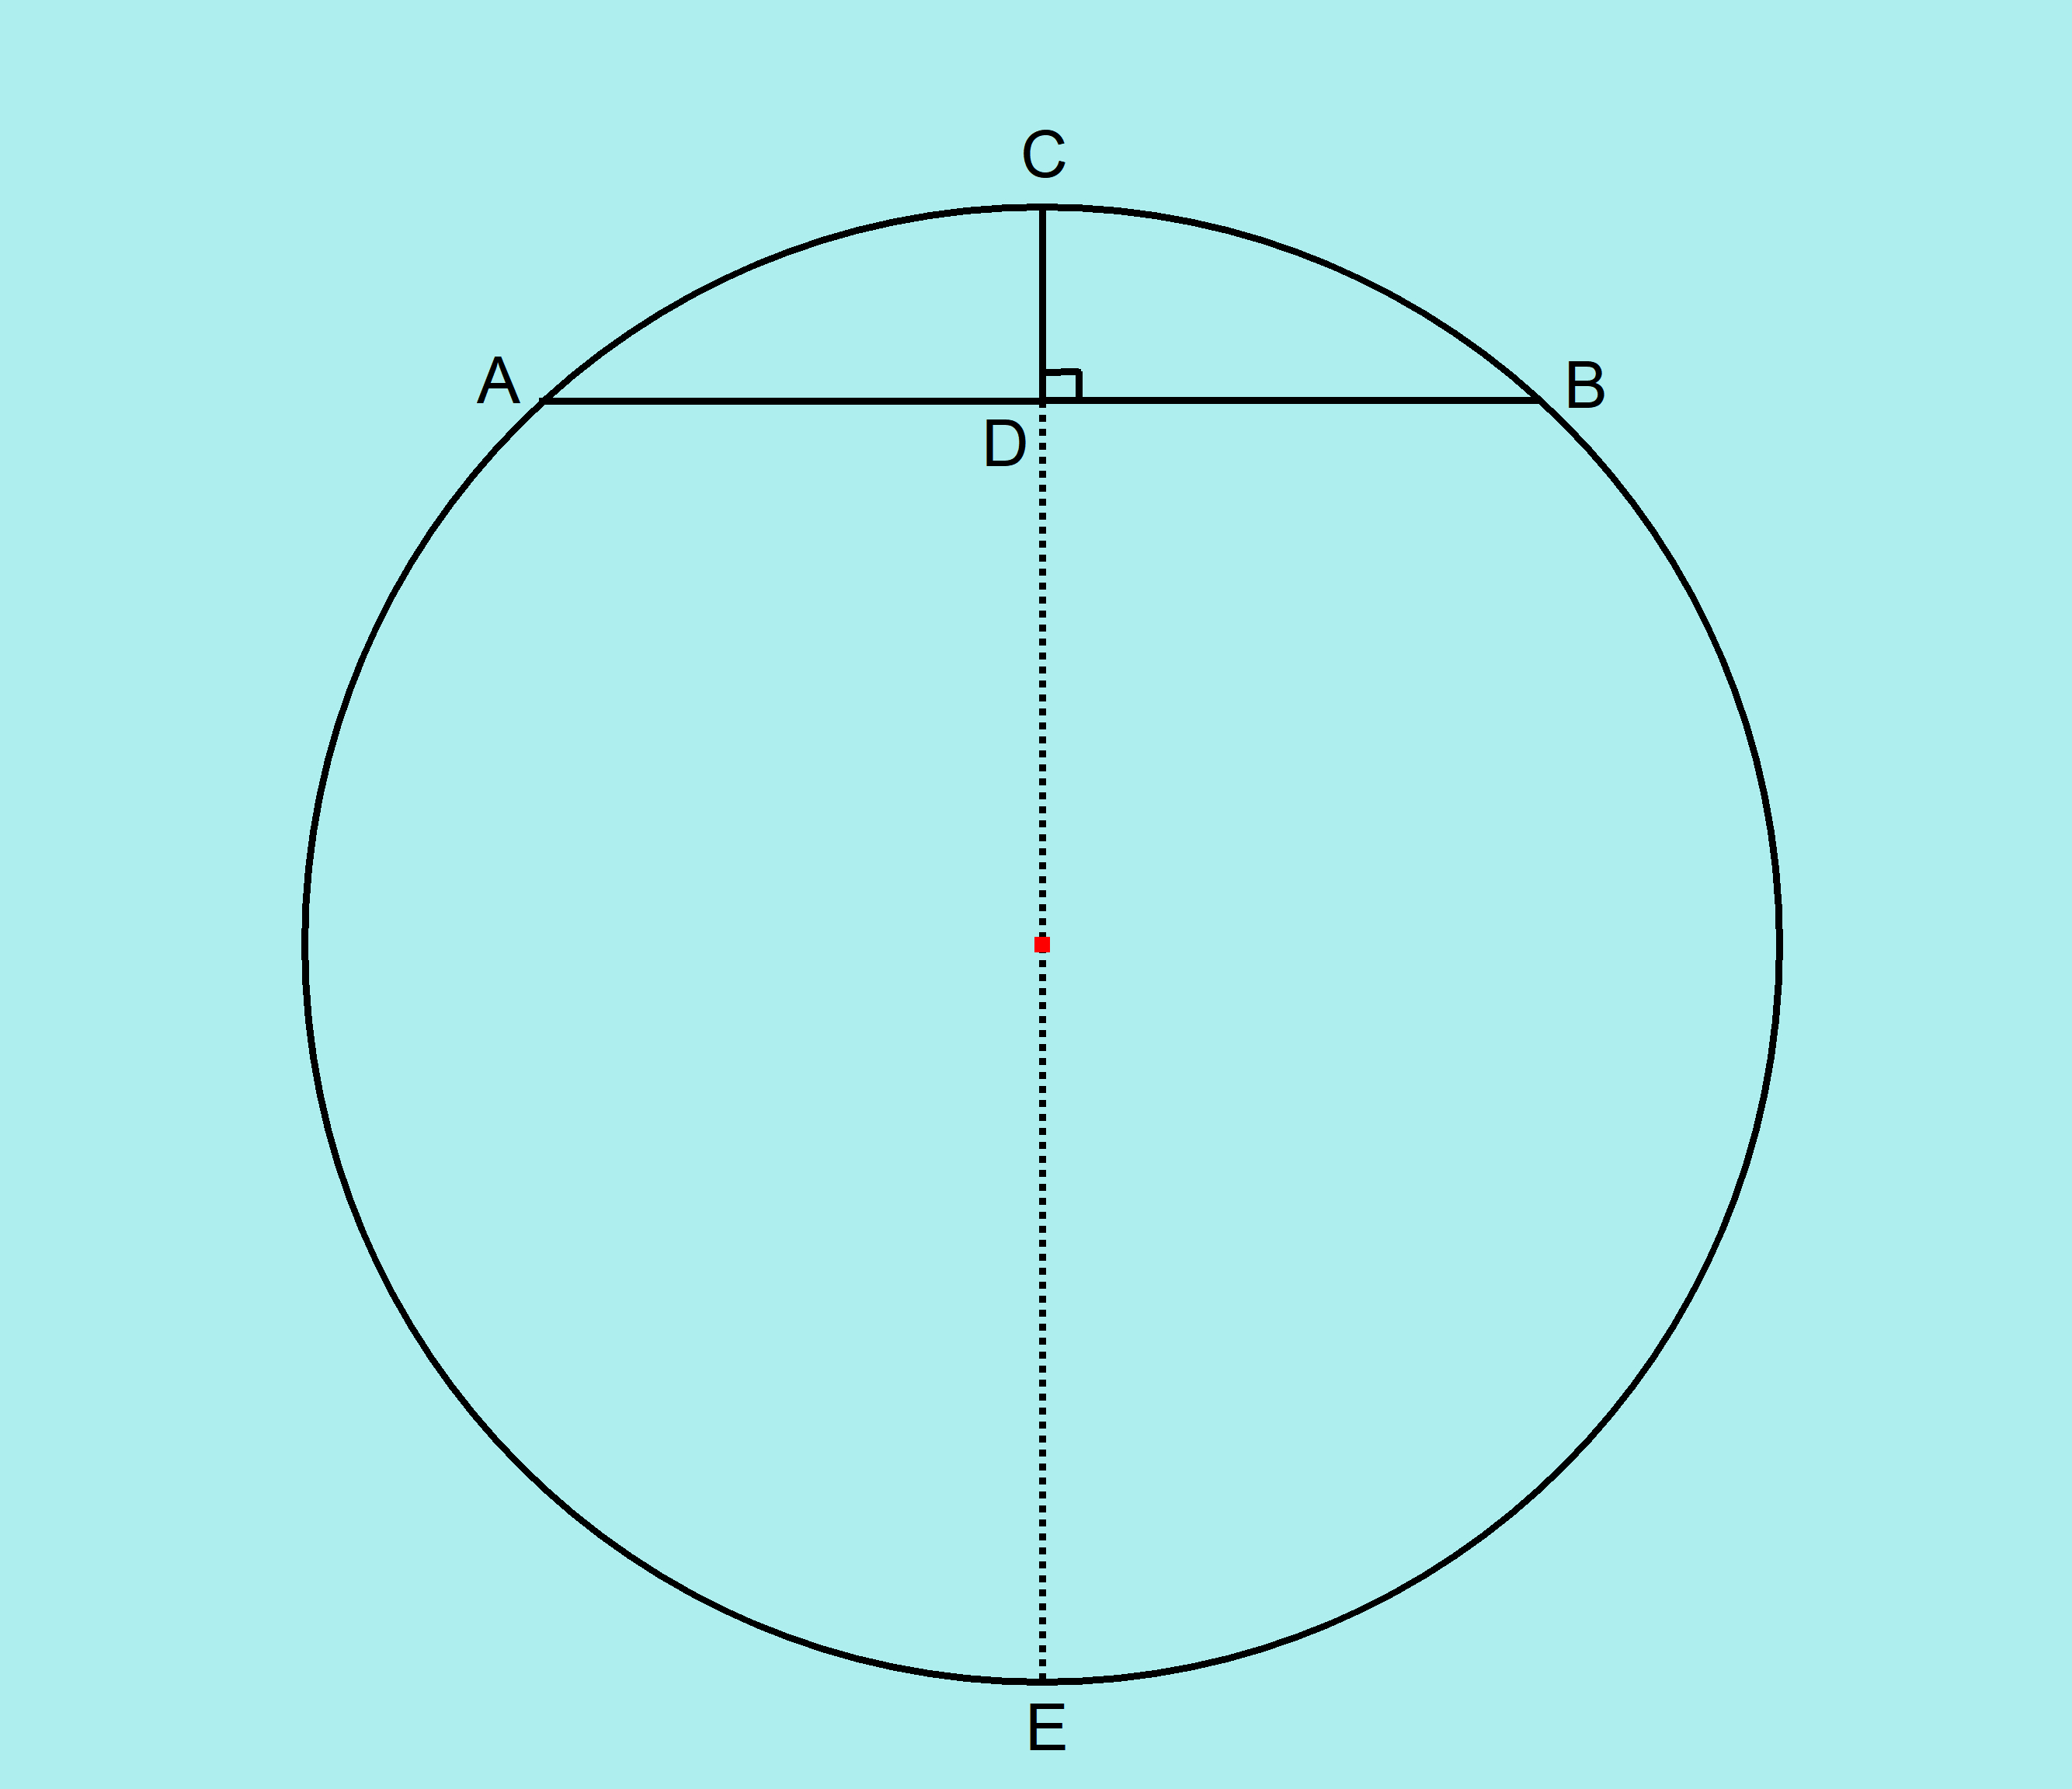 Chord Of A Circle In A Circle The Distance From A Chord Of Length 12 Units To The